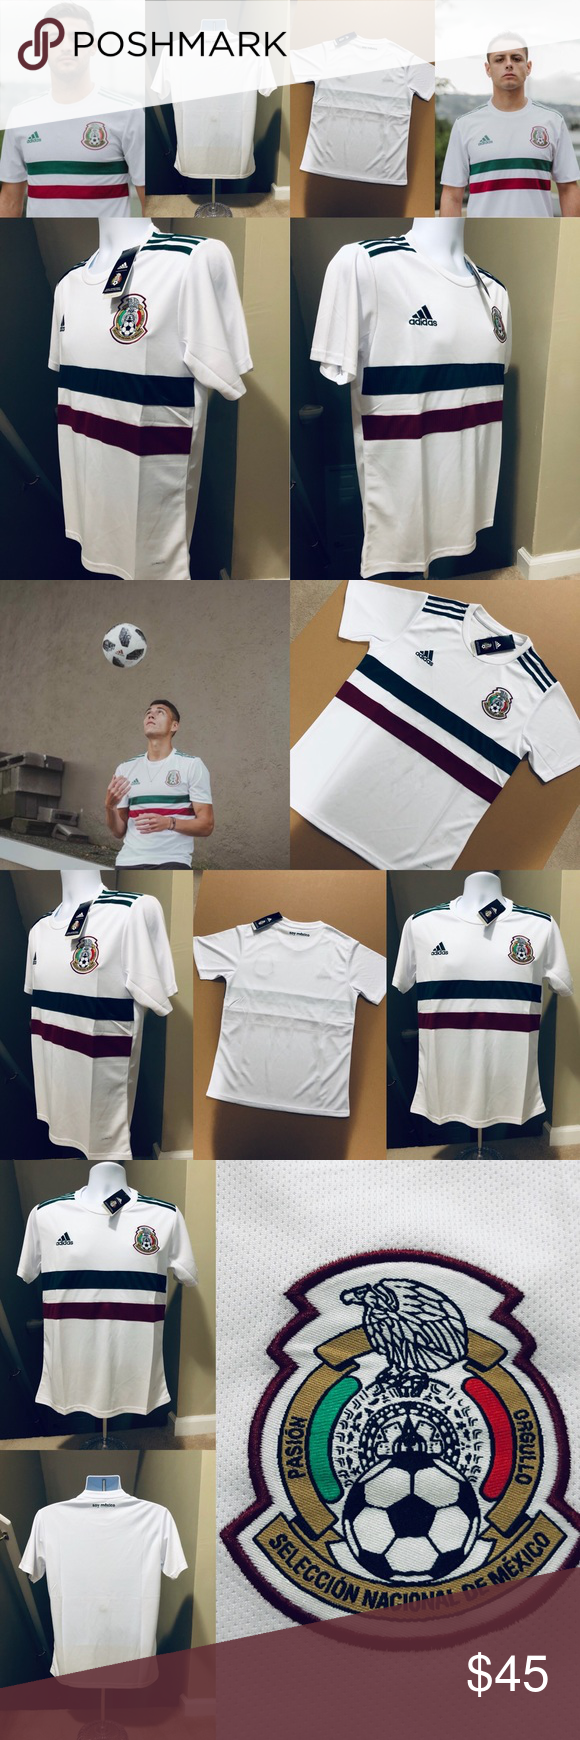 41686df77 2018 Mexico Soccer Jersey ⚽ Futbol World Cup 2018 Mexico World Cup Soccer  Jersey Adult Men's Sizes : Small to XL Away Color Version (White) Same  Jersey ...